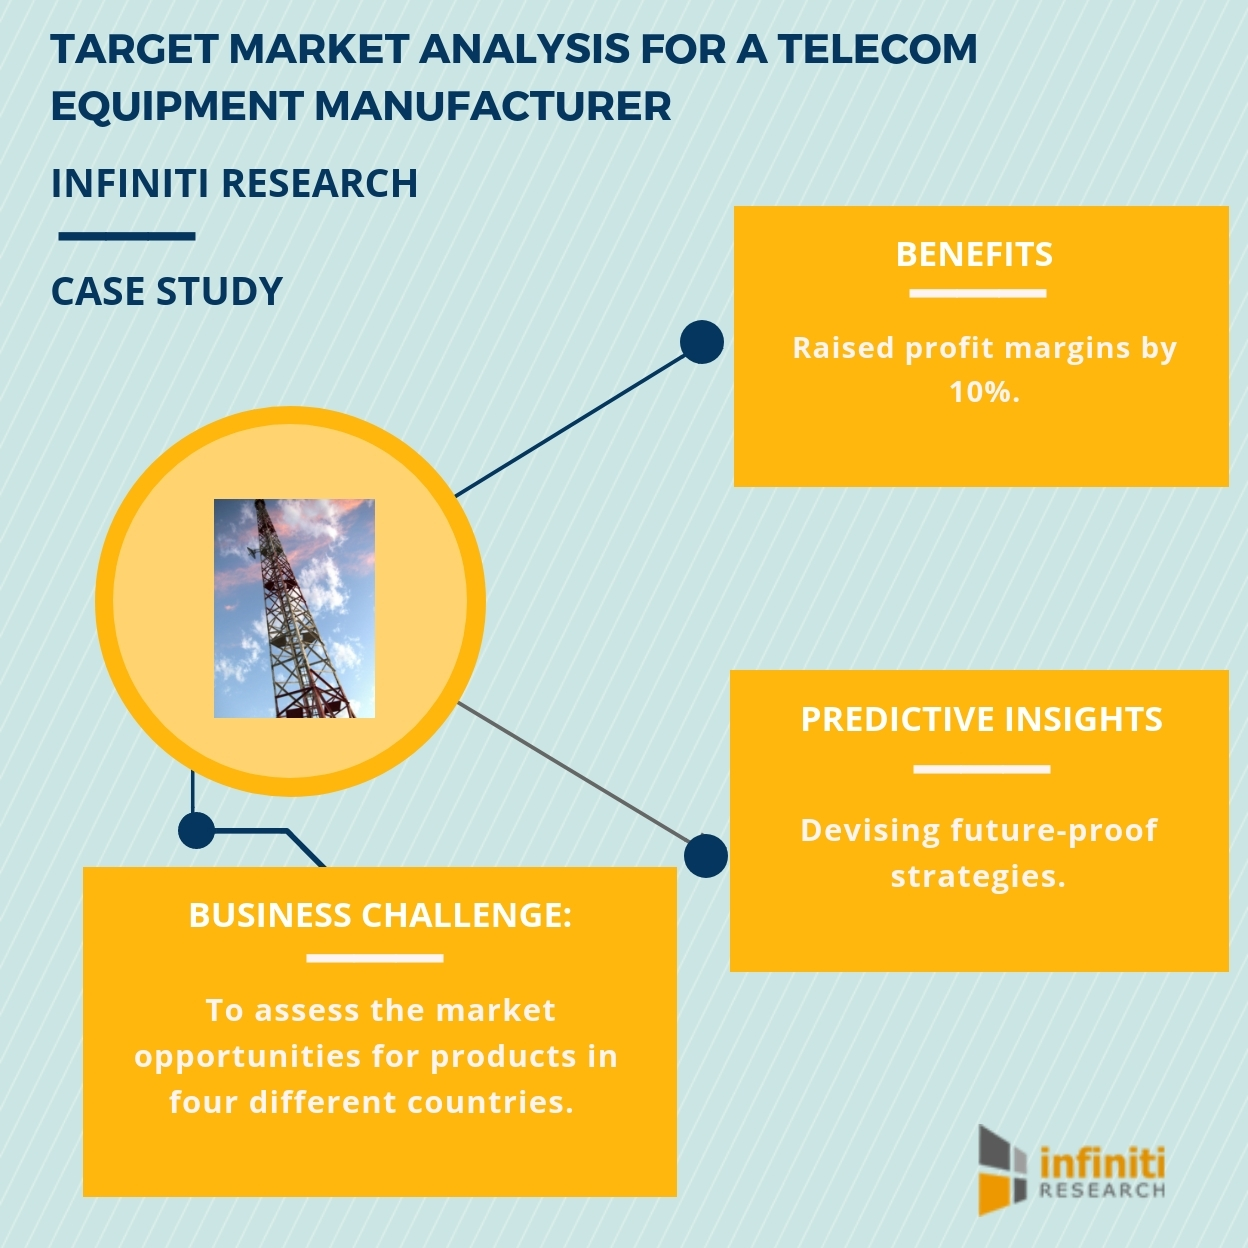 Identifying Target Markets For A Tele Equipment Manufacturer